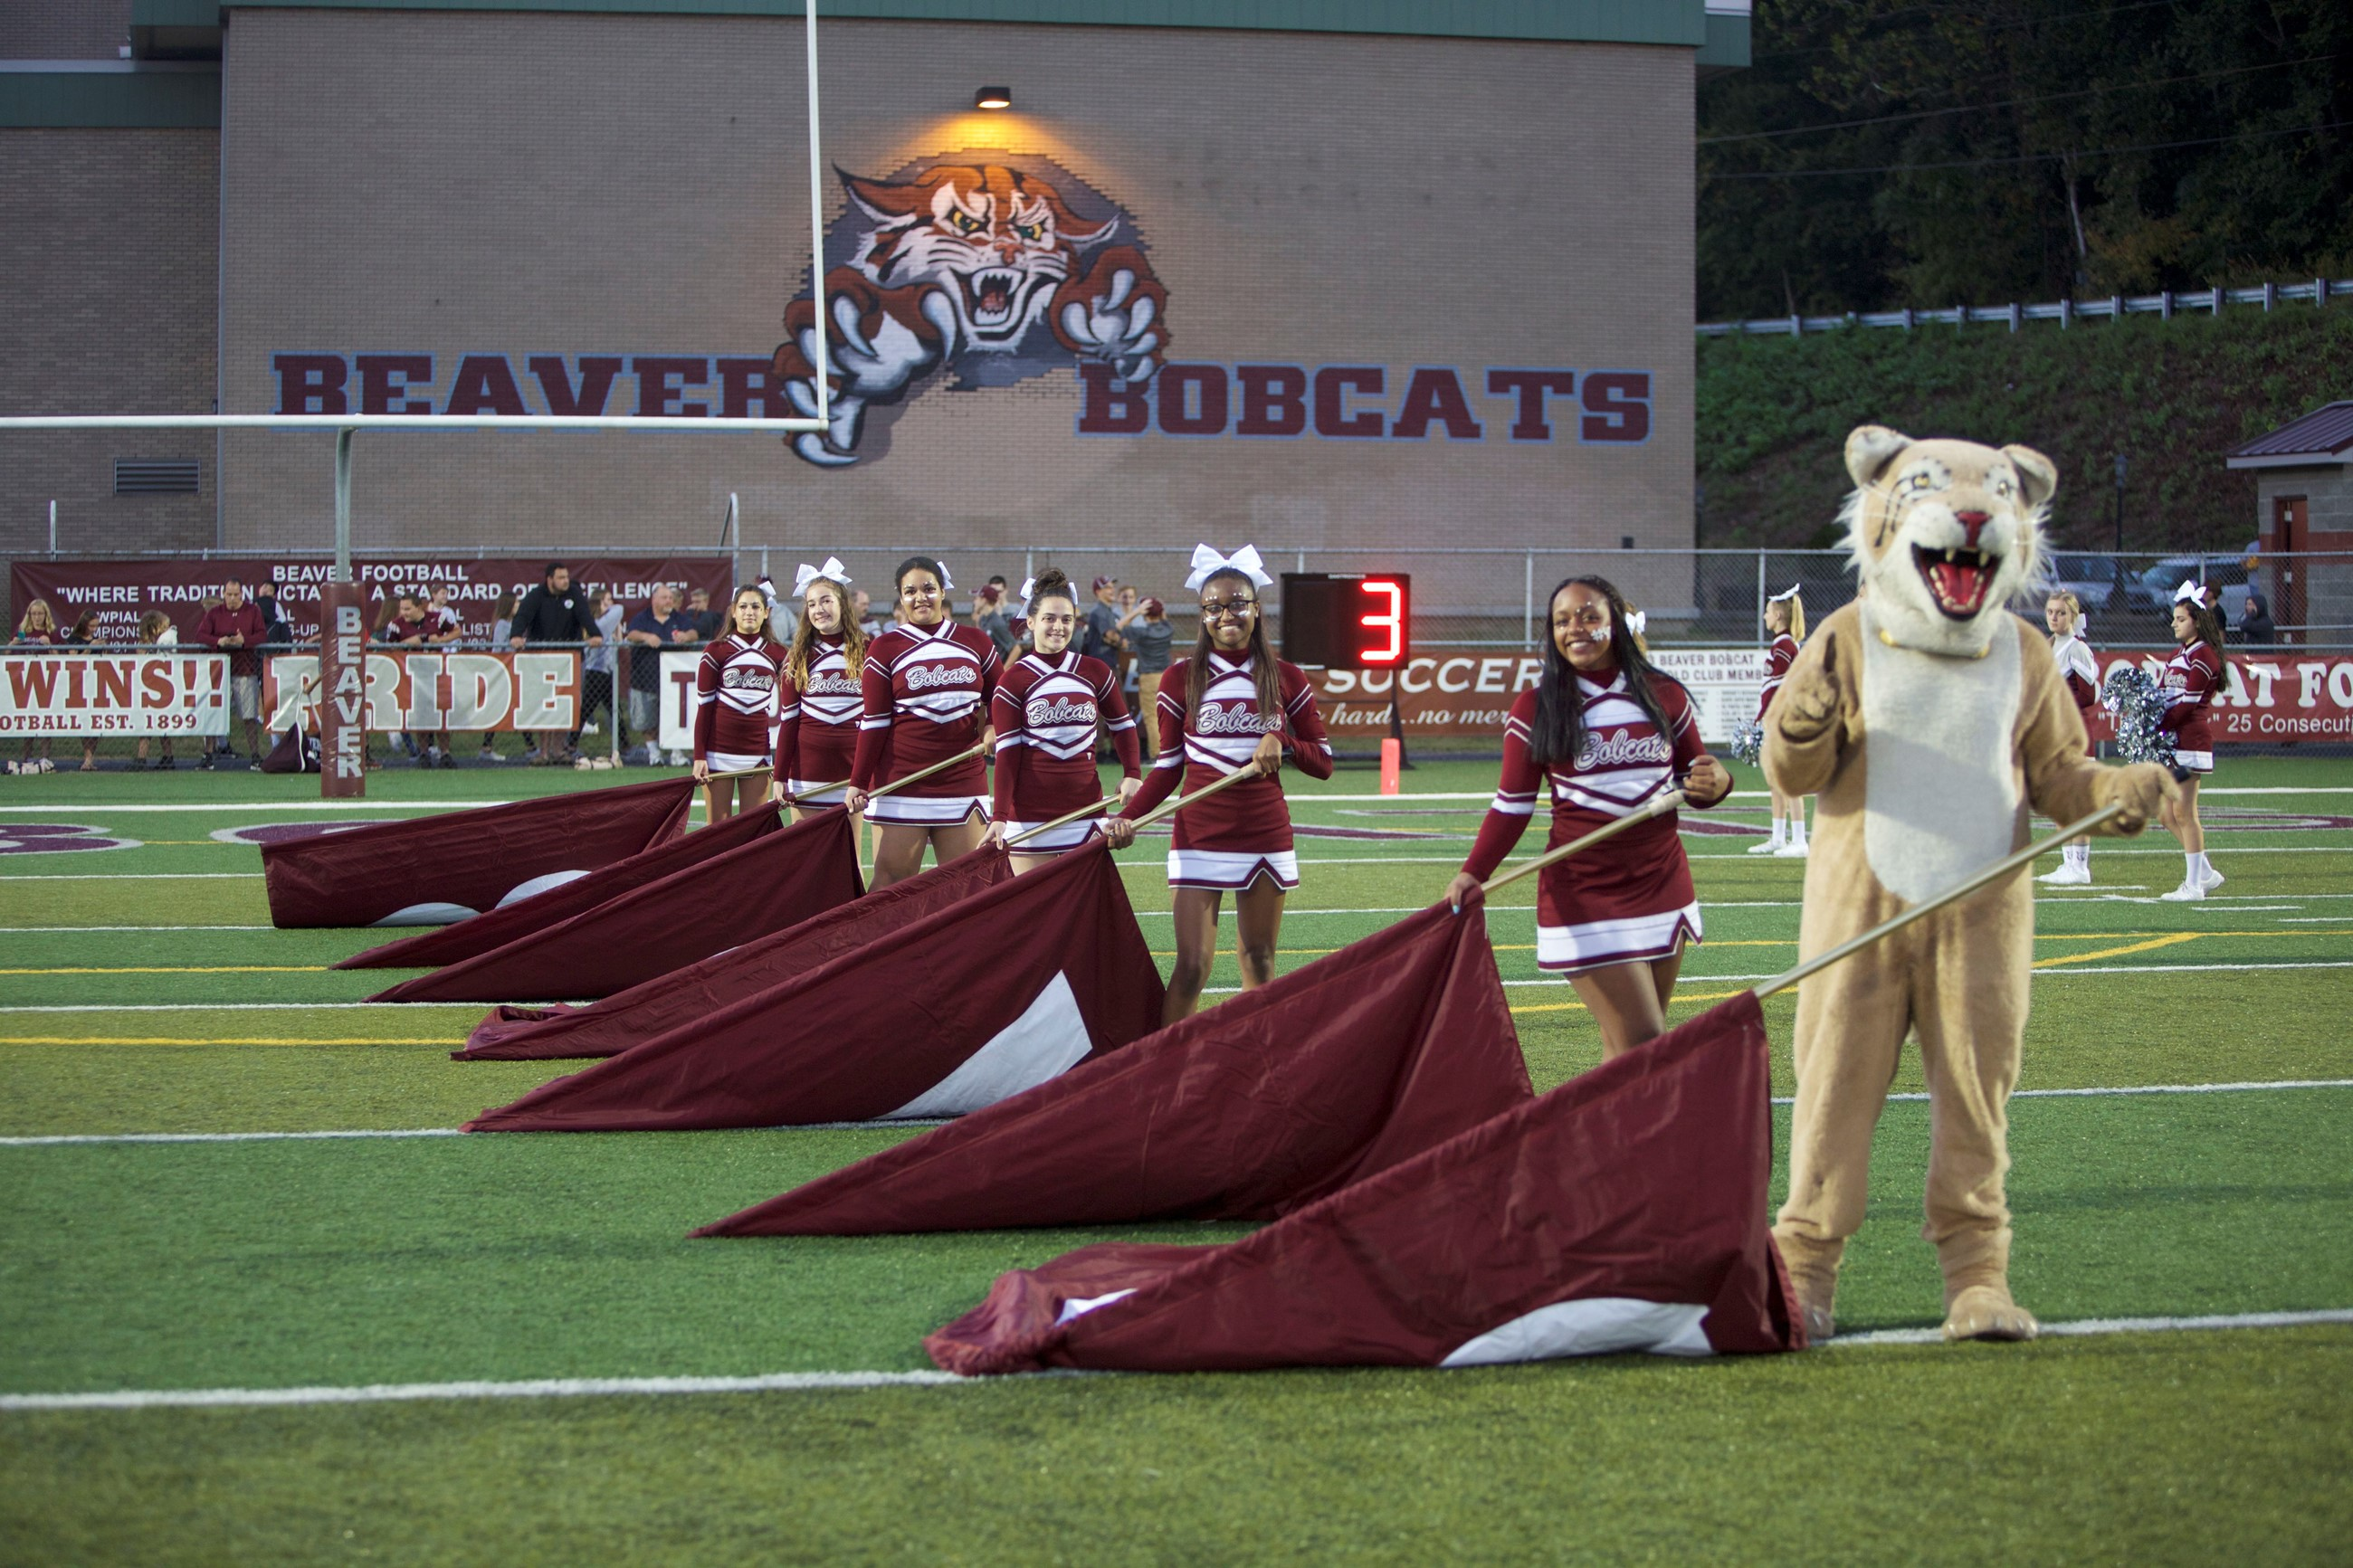 Cheerleaders and Bobcat mascot with flags prior to the start of the Homecoming football game